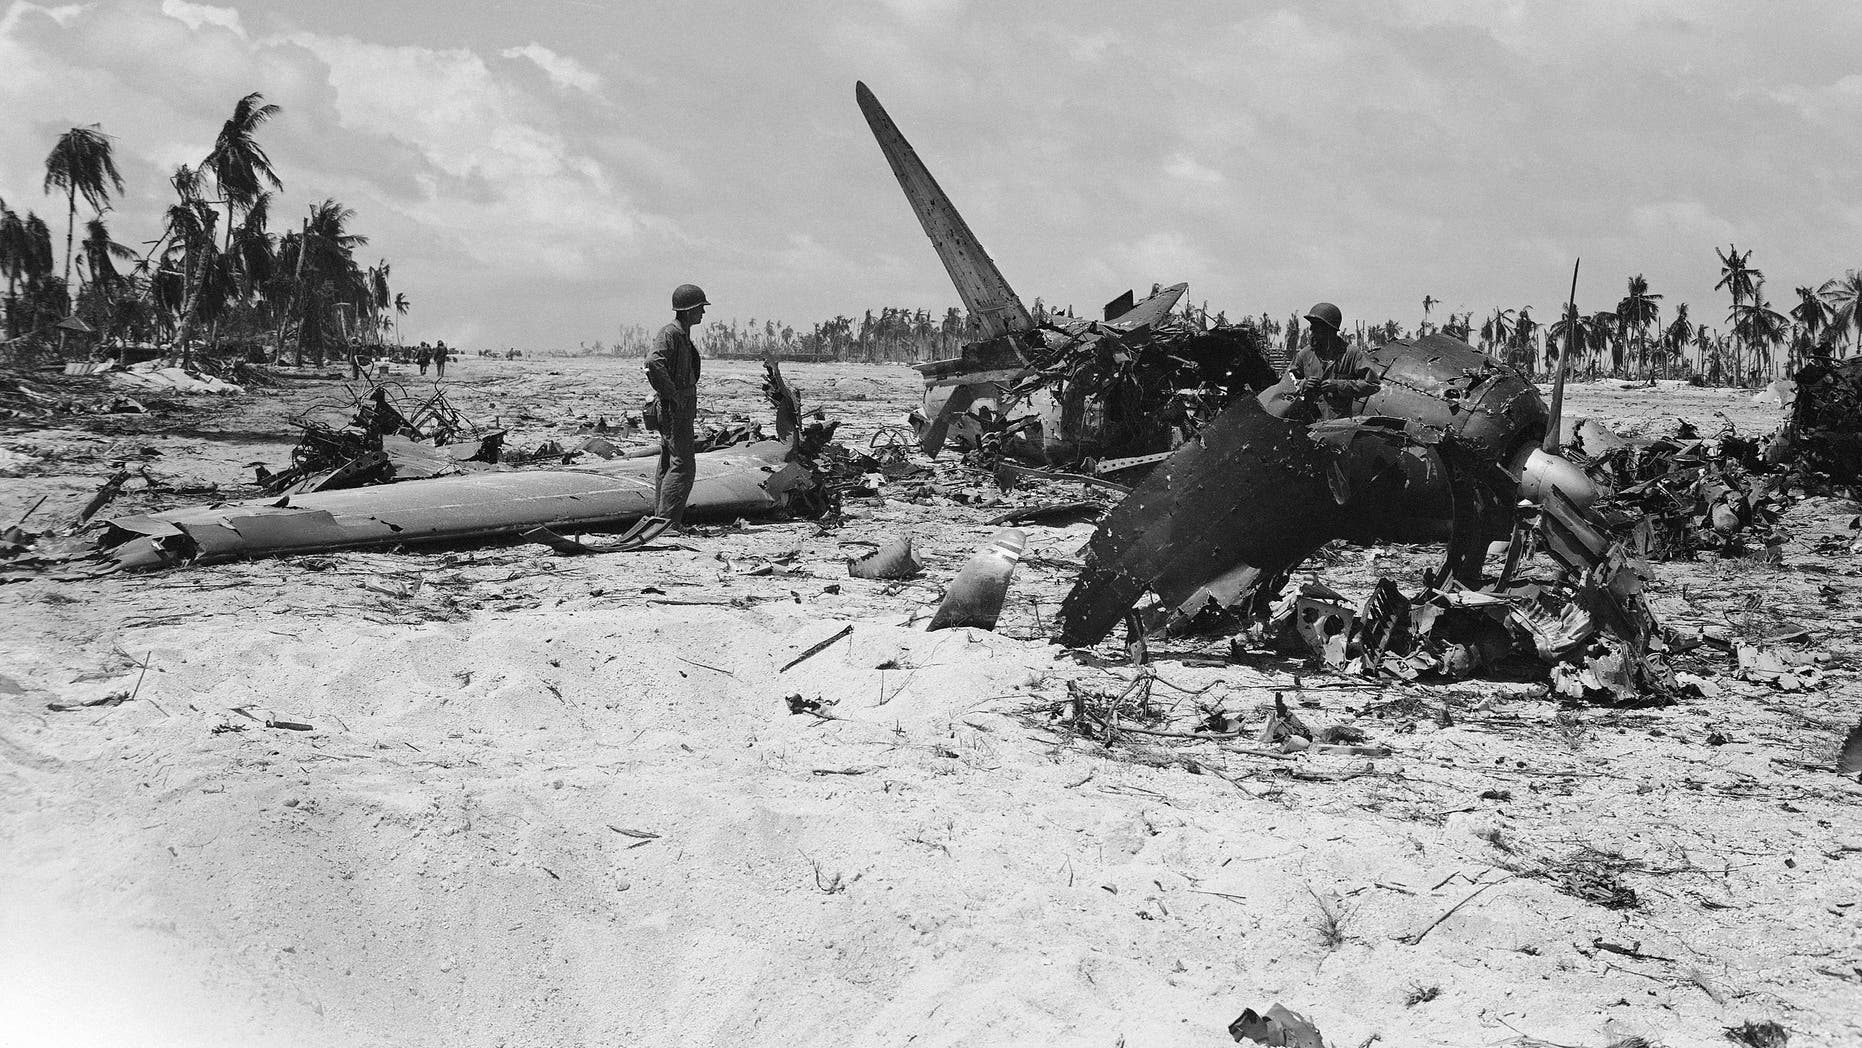 Marines examining the shattered wreckage of Japanese planes on the Tarawa Island airstrip in Tarawa Island on Dec. 1, 1943 after U.S. Marines battled their way ashore on Nov. 20. (AP Photo/Frank Filan)